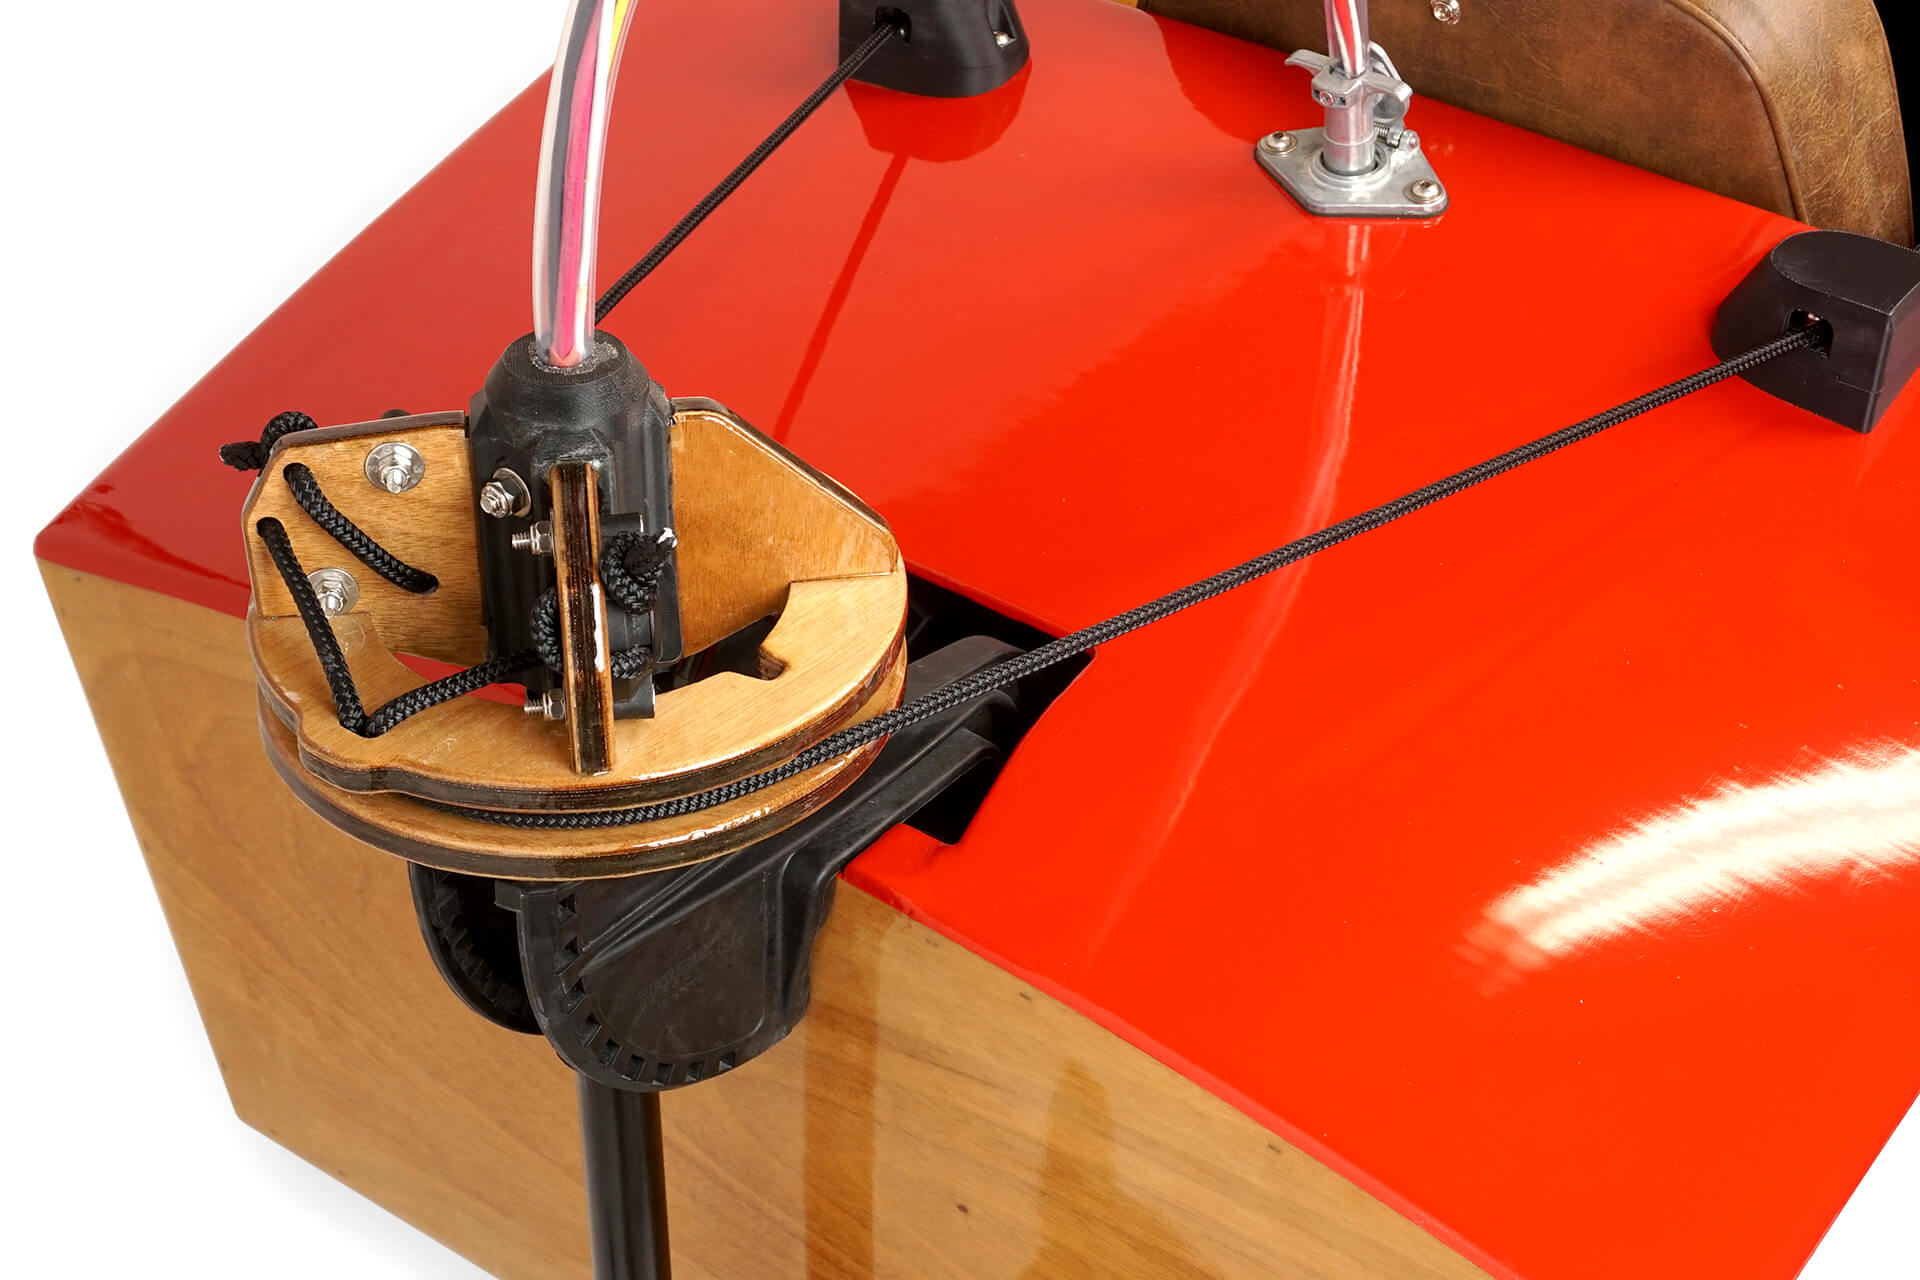 The steering drum and pulley system of the mini electric boat